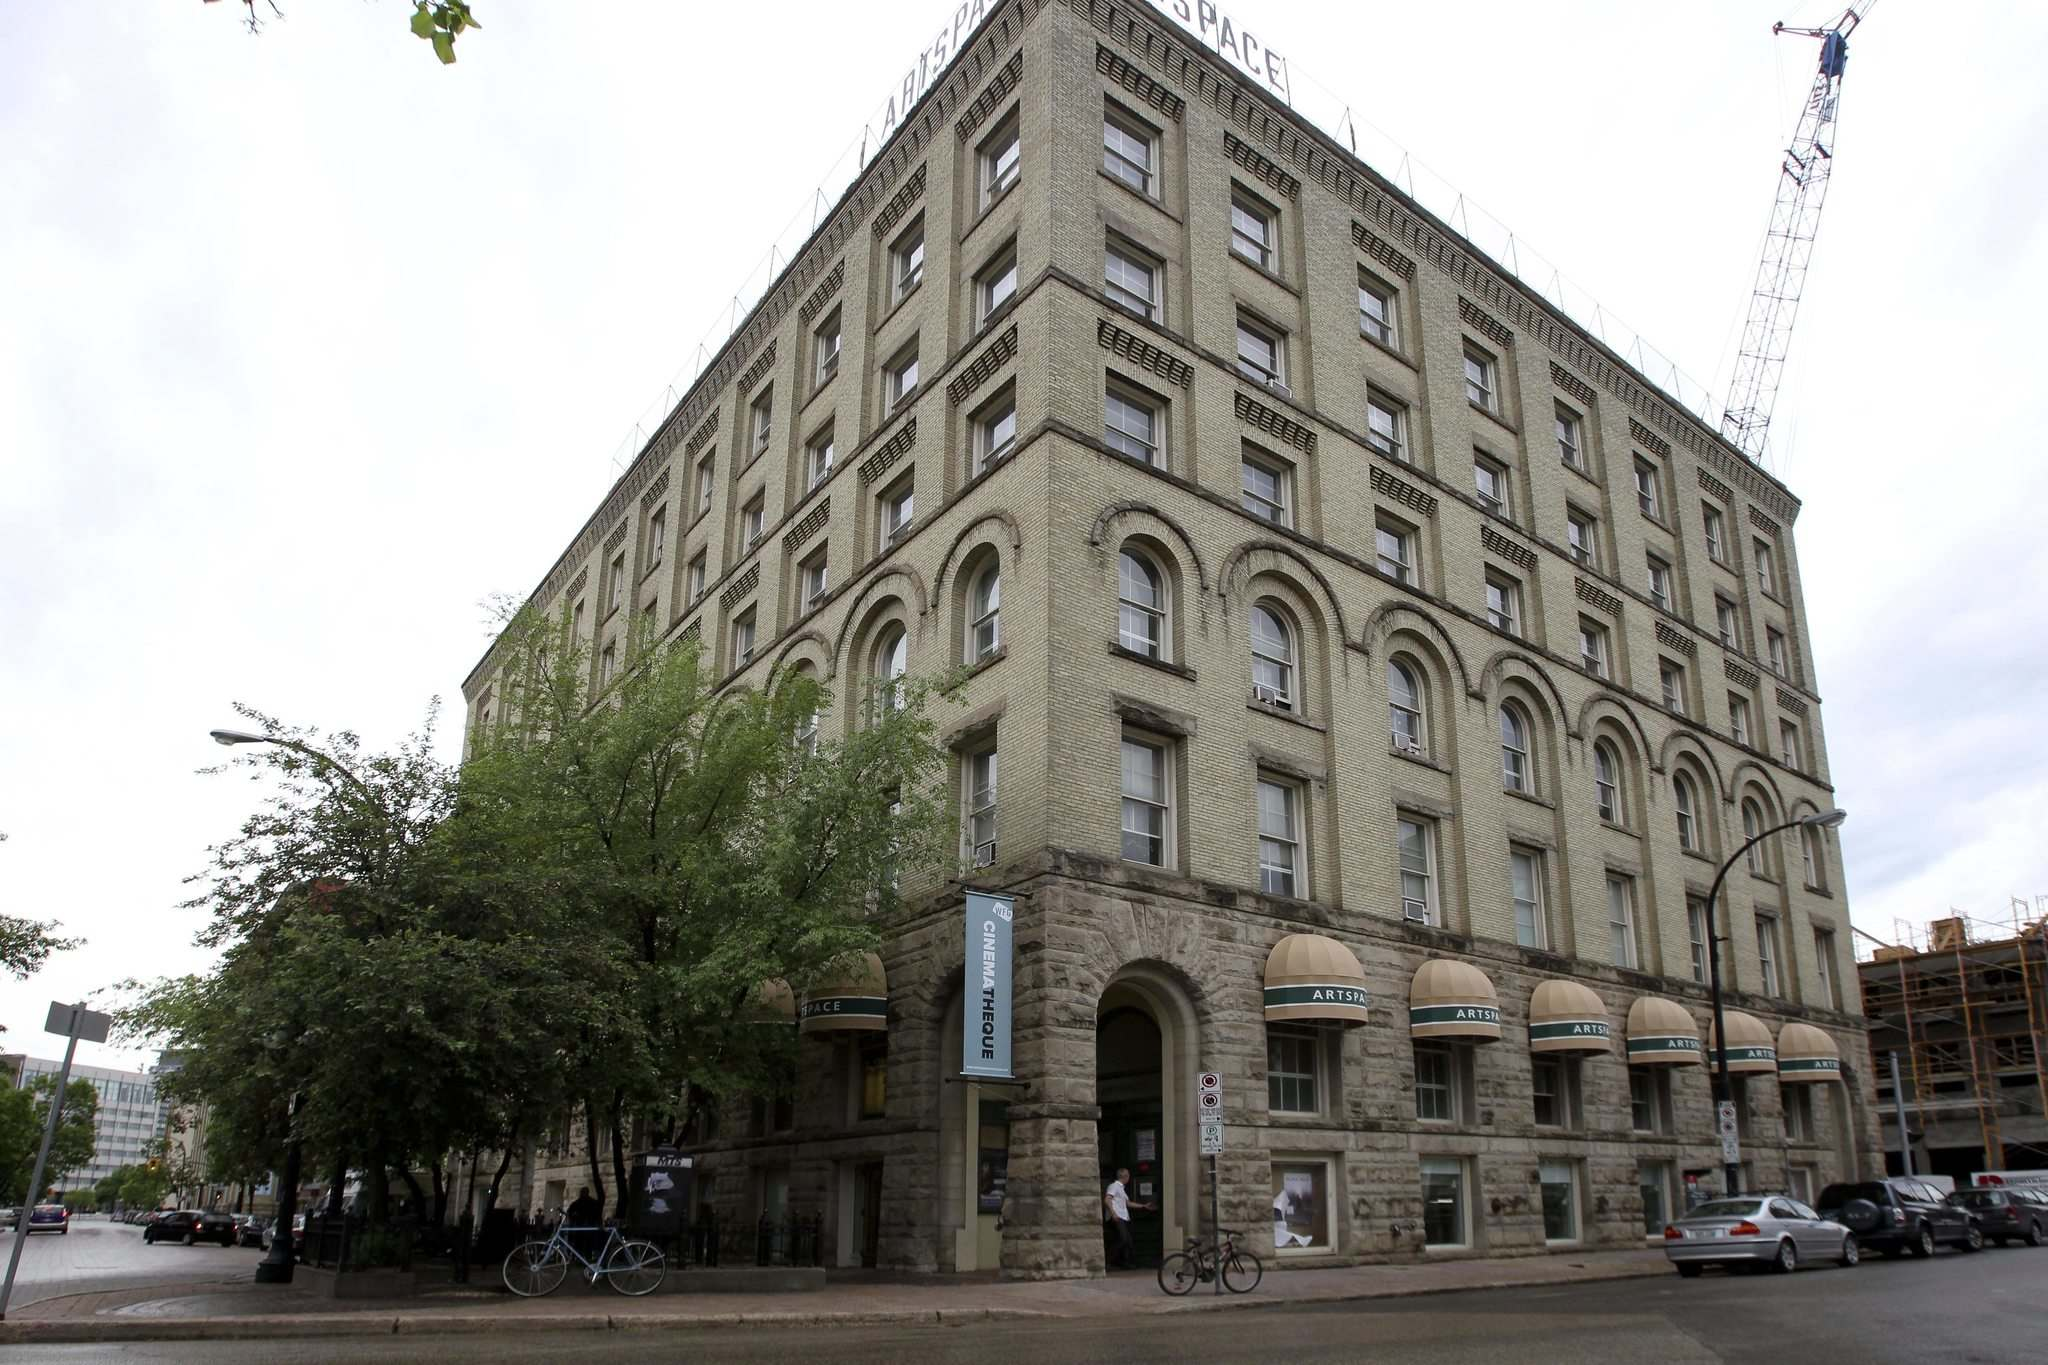 <p> The Artspace building at 100 Arthur St. in the Winnipeg&#39;s exchange district.</p>